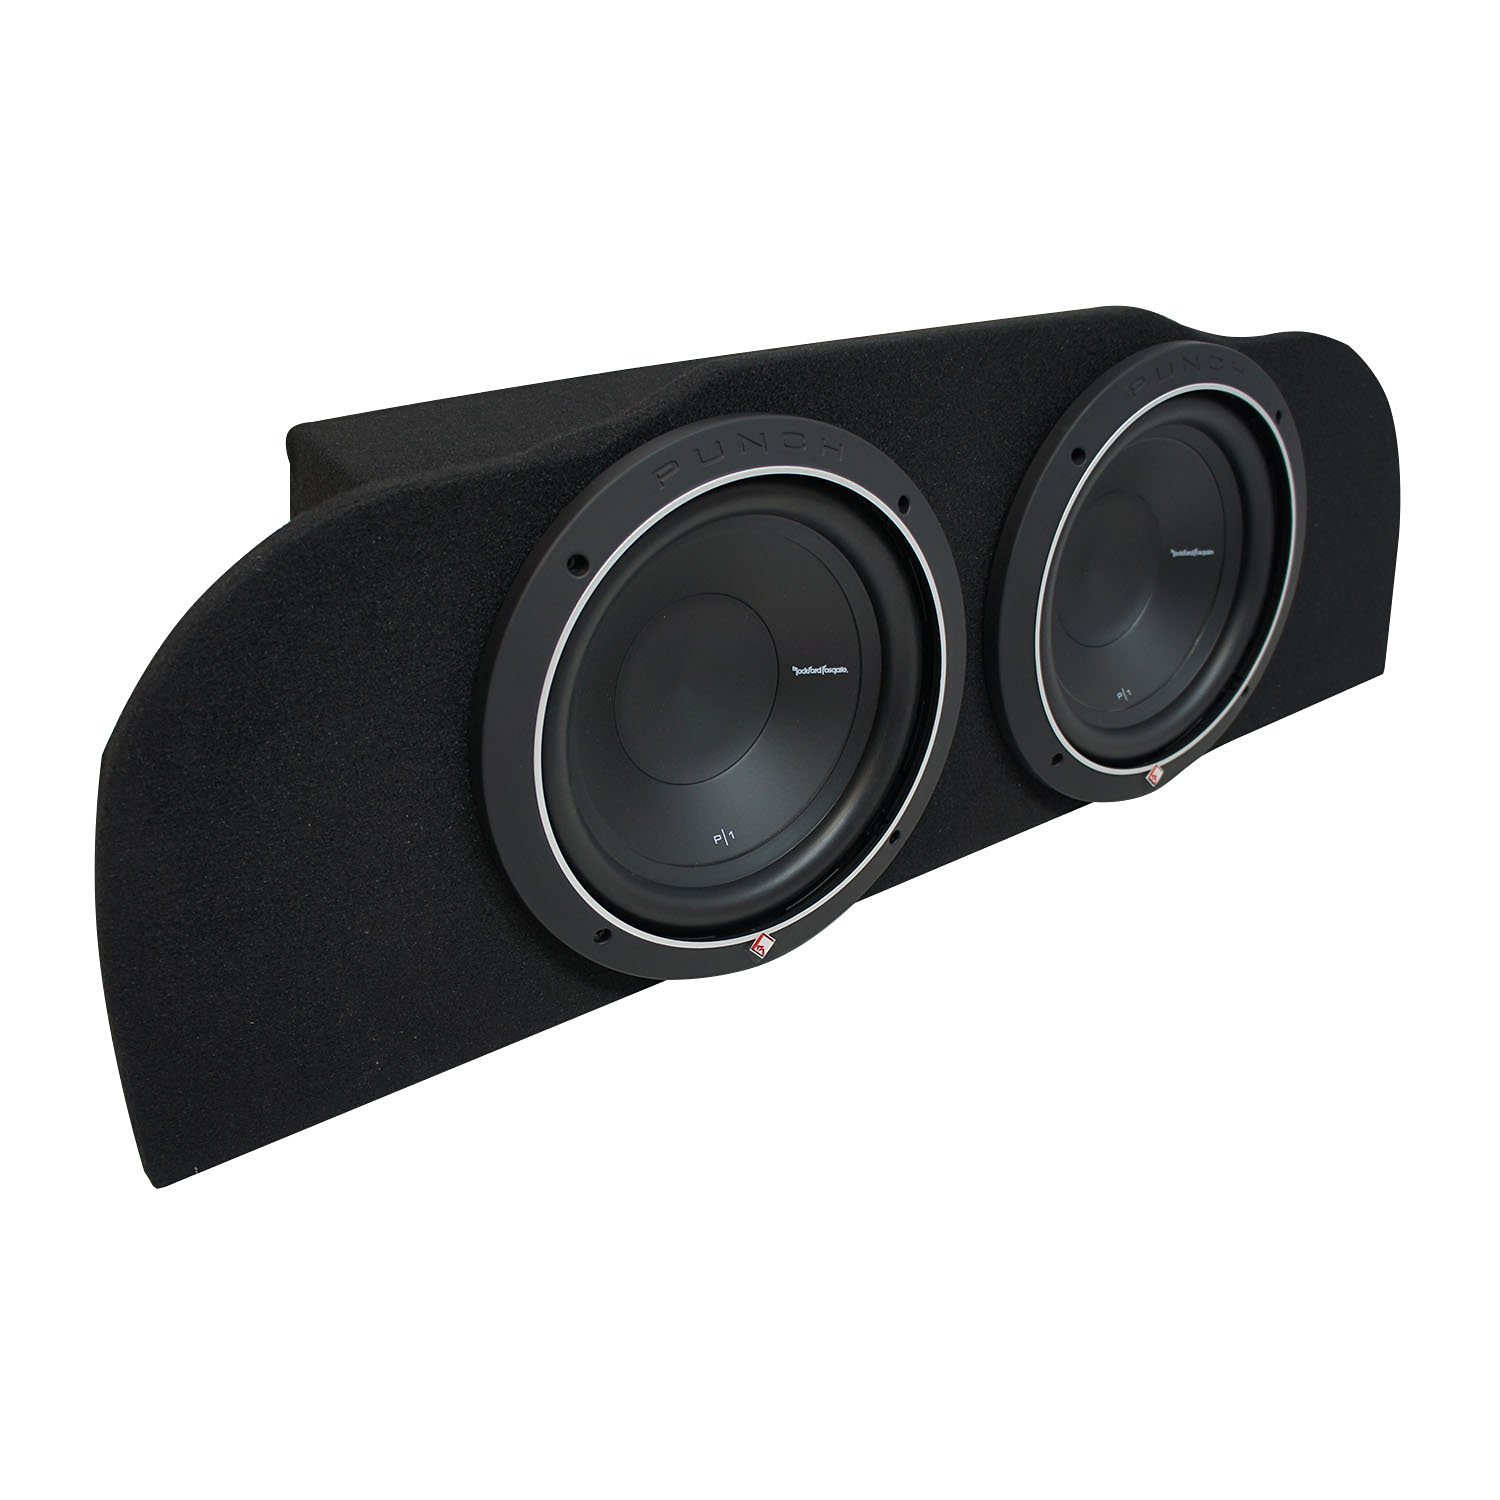 "2003-2015 Infiniti G35 Coupe Rockford Punch P1S410 Subwoofer Dual 10"" Sub Box Enclosure - Final 2 Ohm"